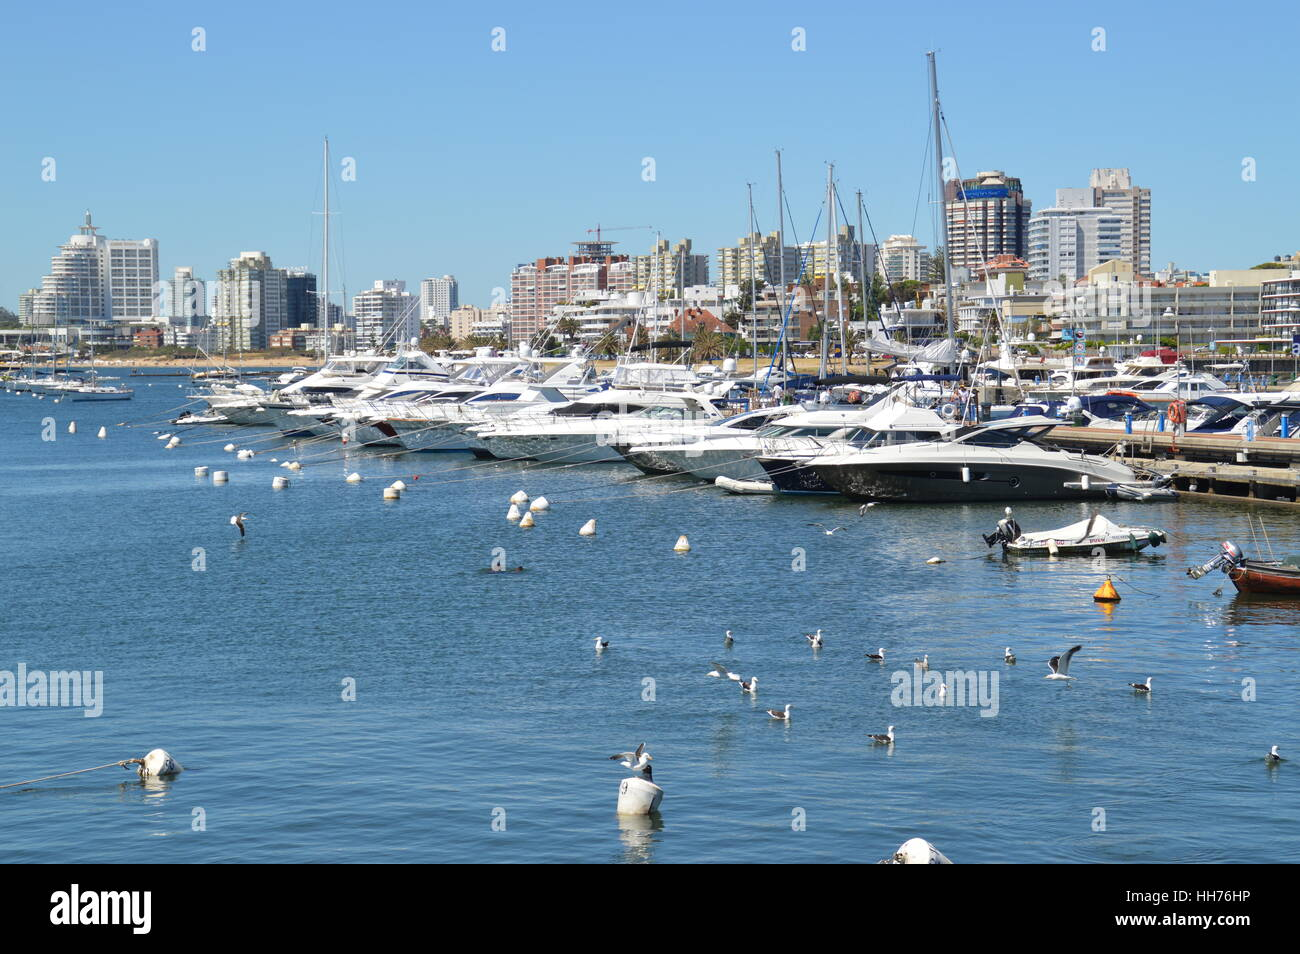 Yachts and boats docked at the scenic port of Punta del Este in Uruguay. - Stock Image